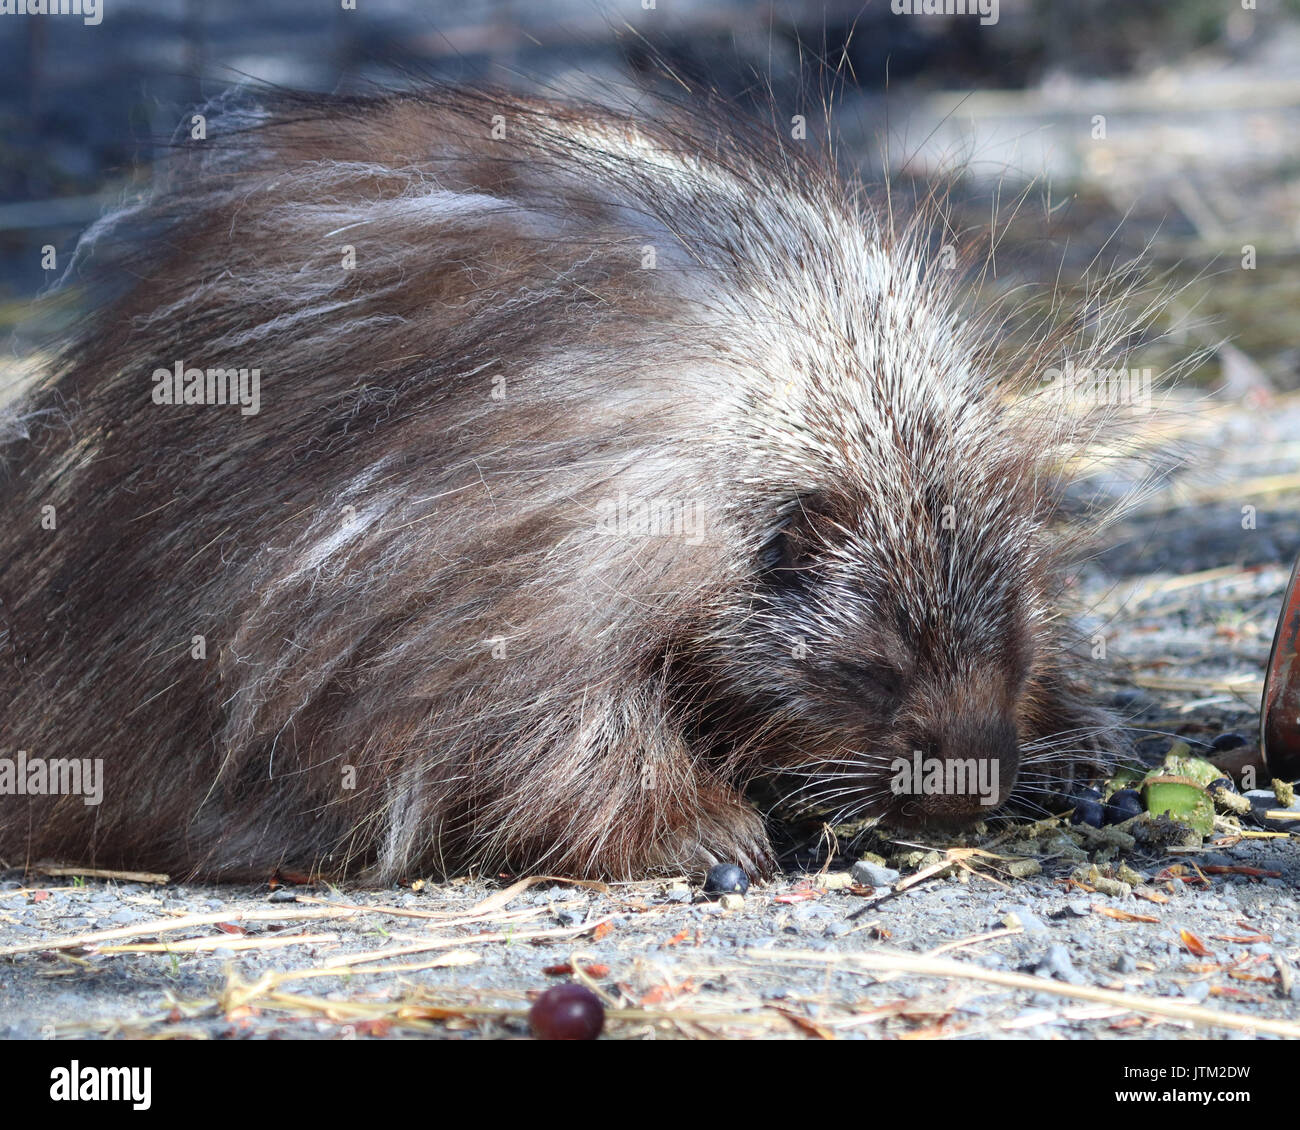 Snickers the famous Porcupine at Alaska Wildlife Conservation center in Portage, Alaska - Stock Image